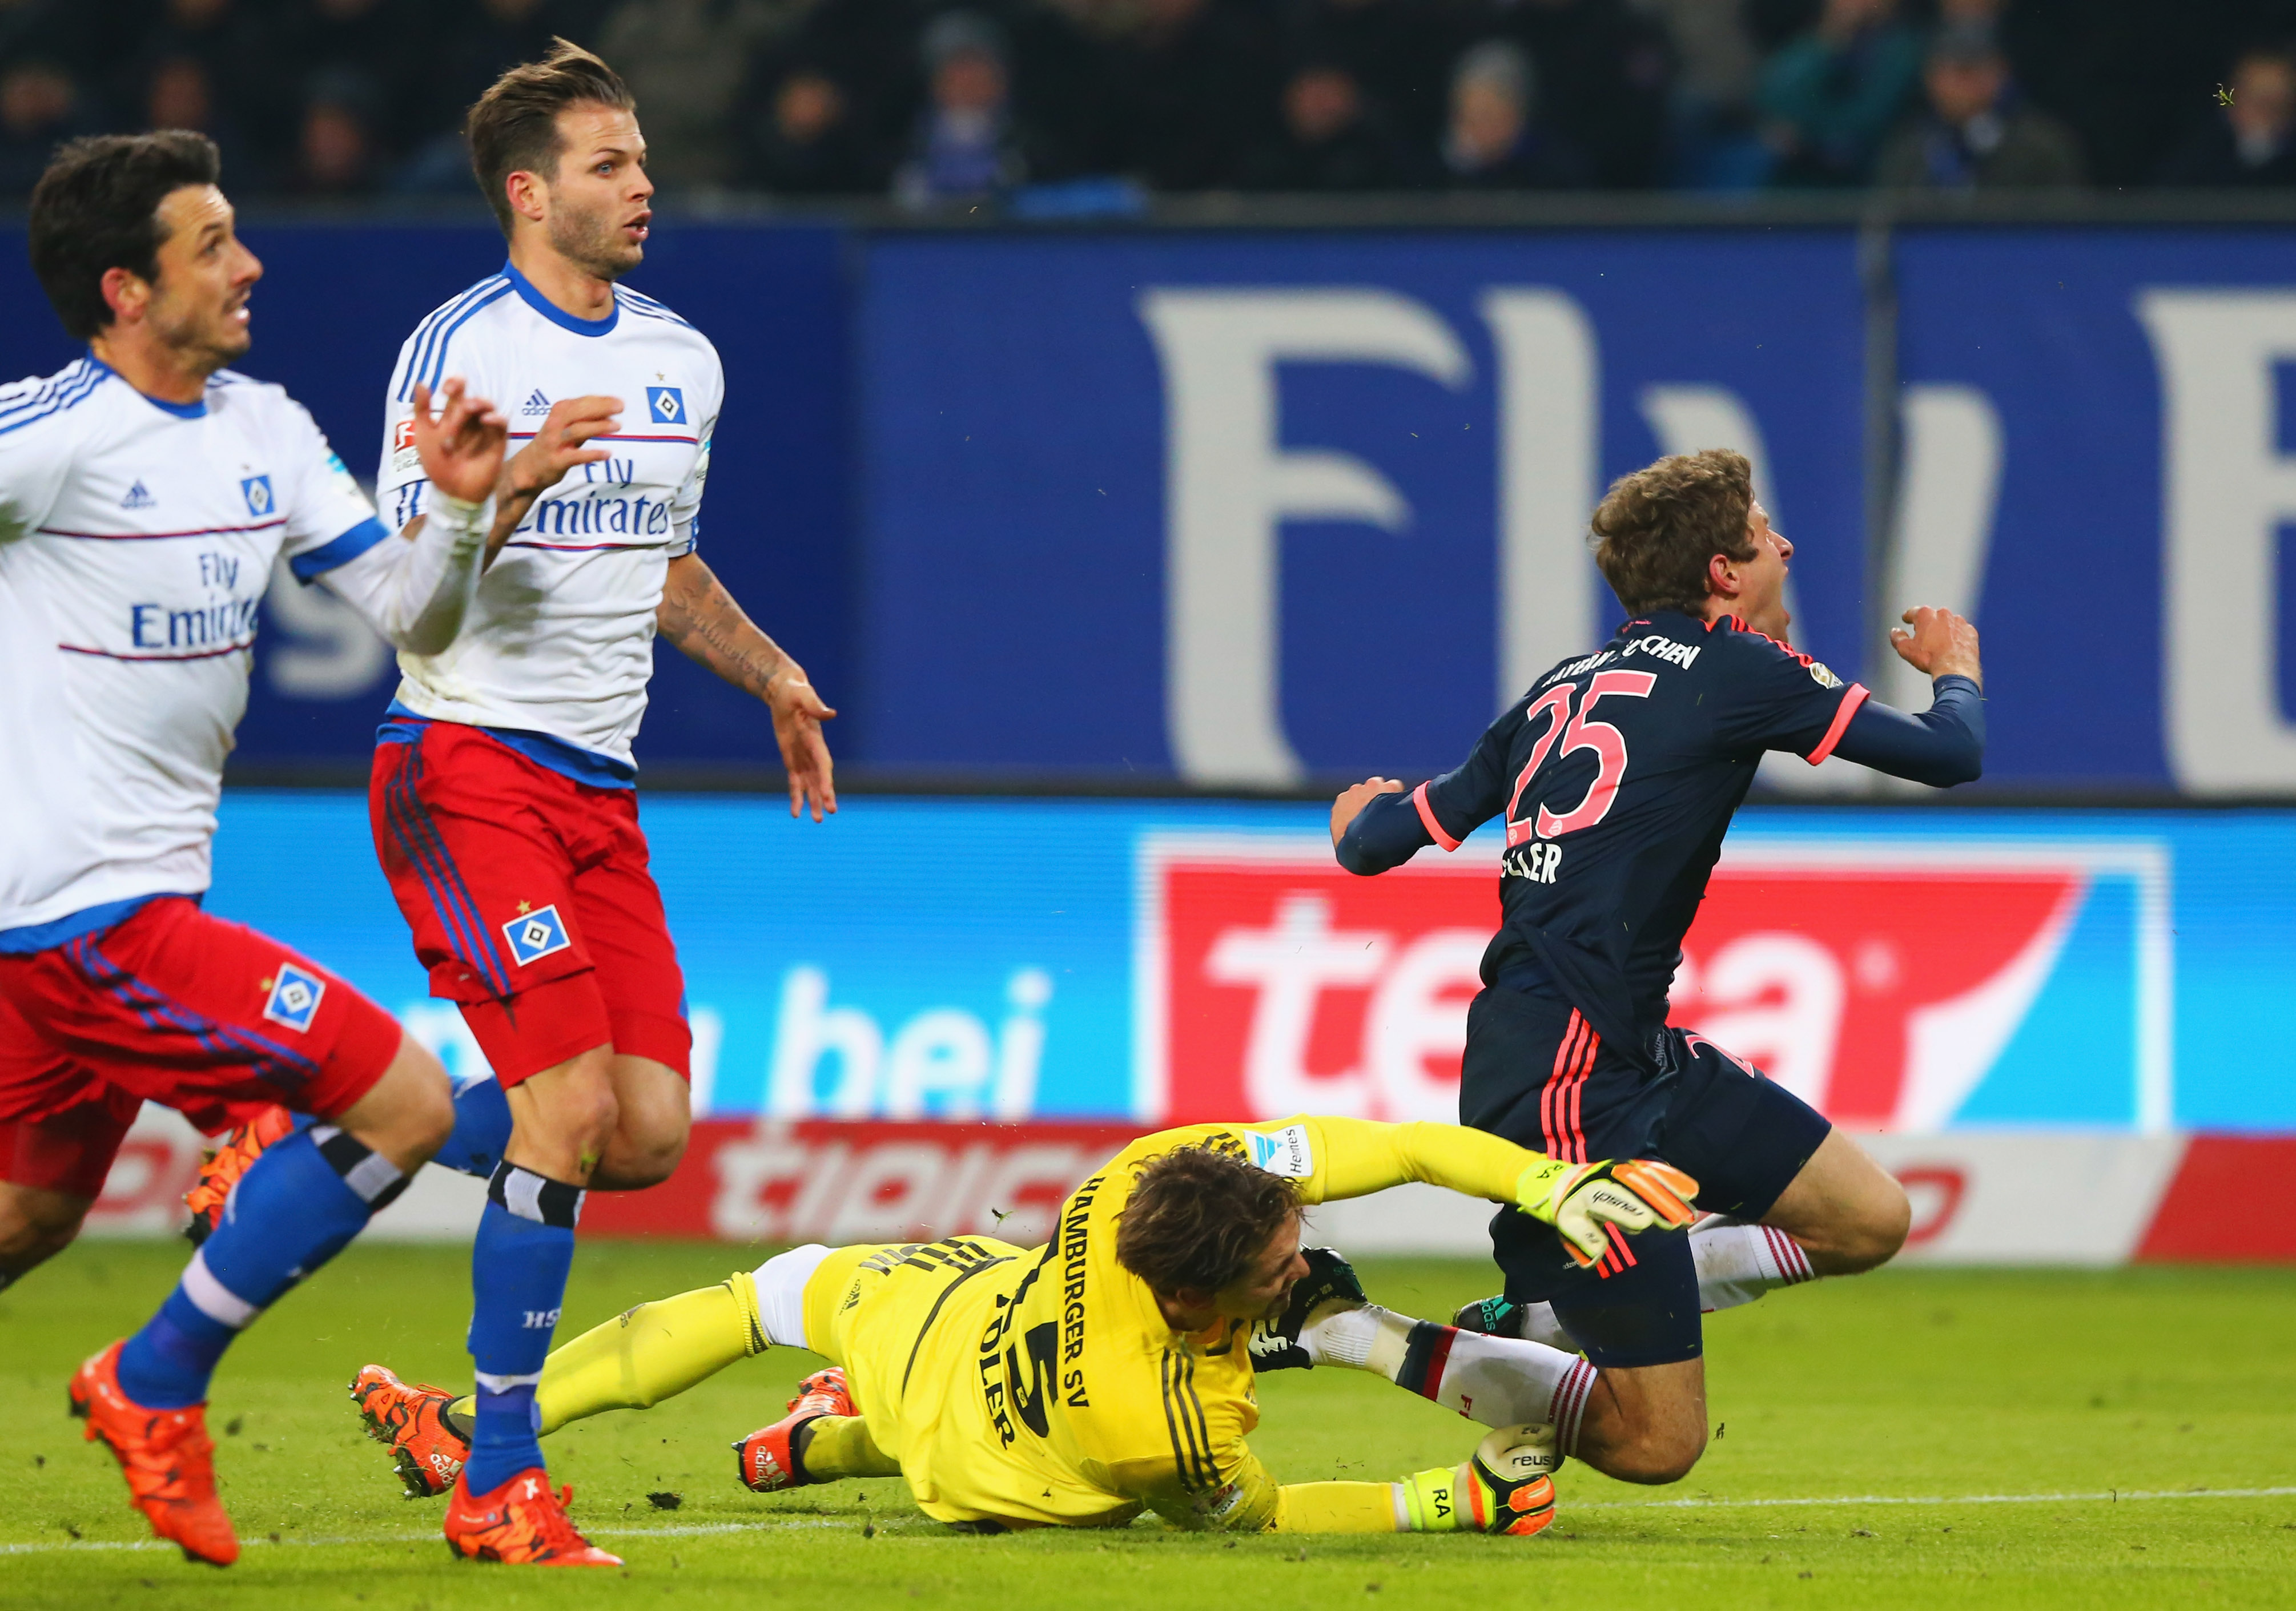 HAMBURG, GERMANY - JANUARY 22: Thomas Mueller of Bayern Munich is fouled by goalkeeper Rene Adler of SV Hamburg for a penalty during the Bundesliga match between Hamburger SV and FC Bayern Muenchen at Volksparkstadion on January 22, 2016 in Hamburg, Germany. (Photo by Martin Rose/Bongarts/Getty Images)